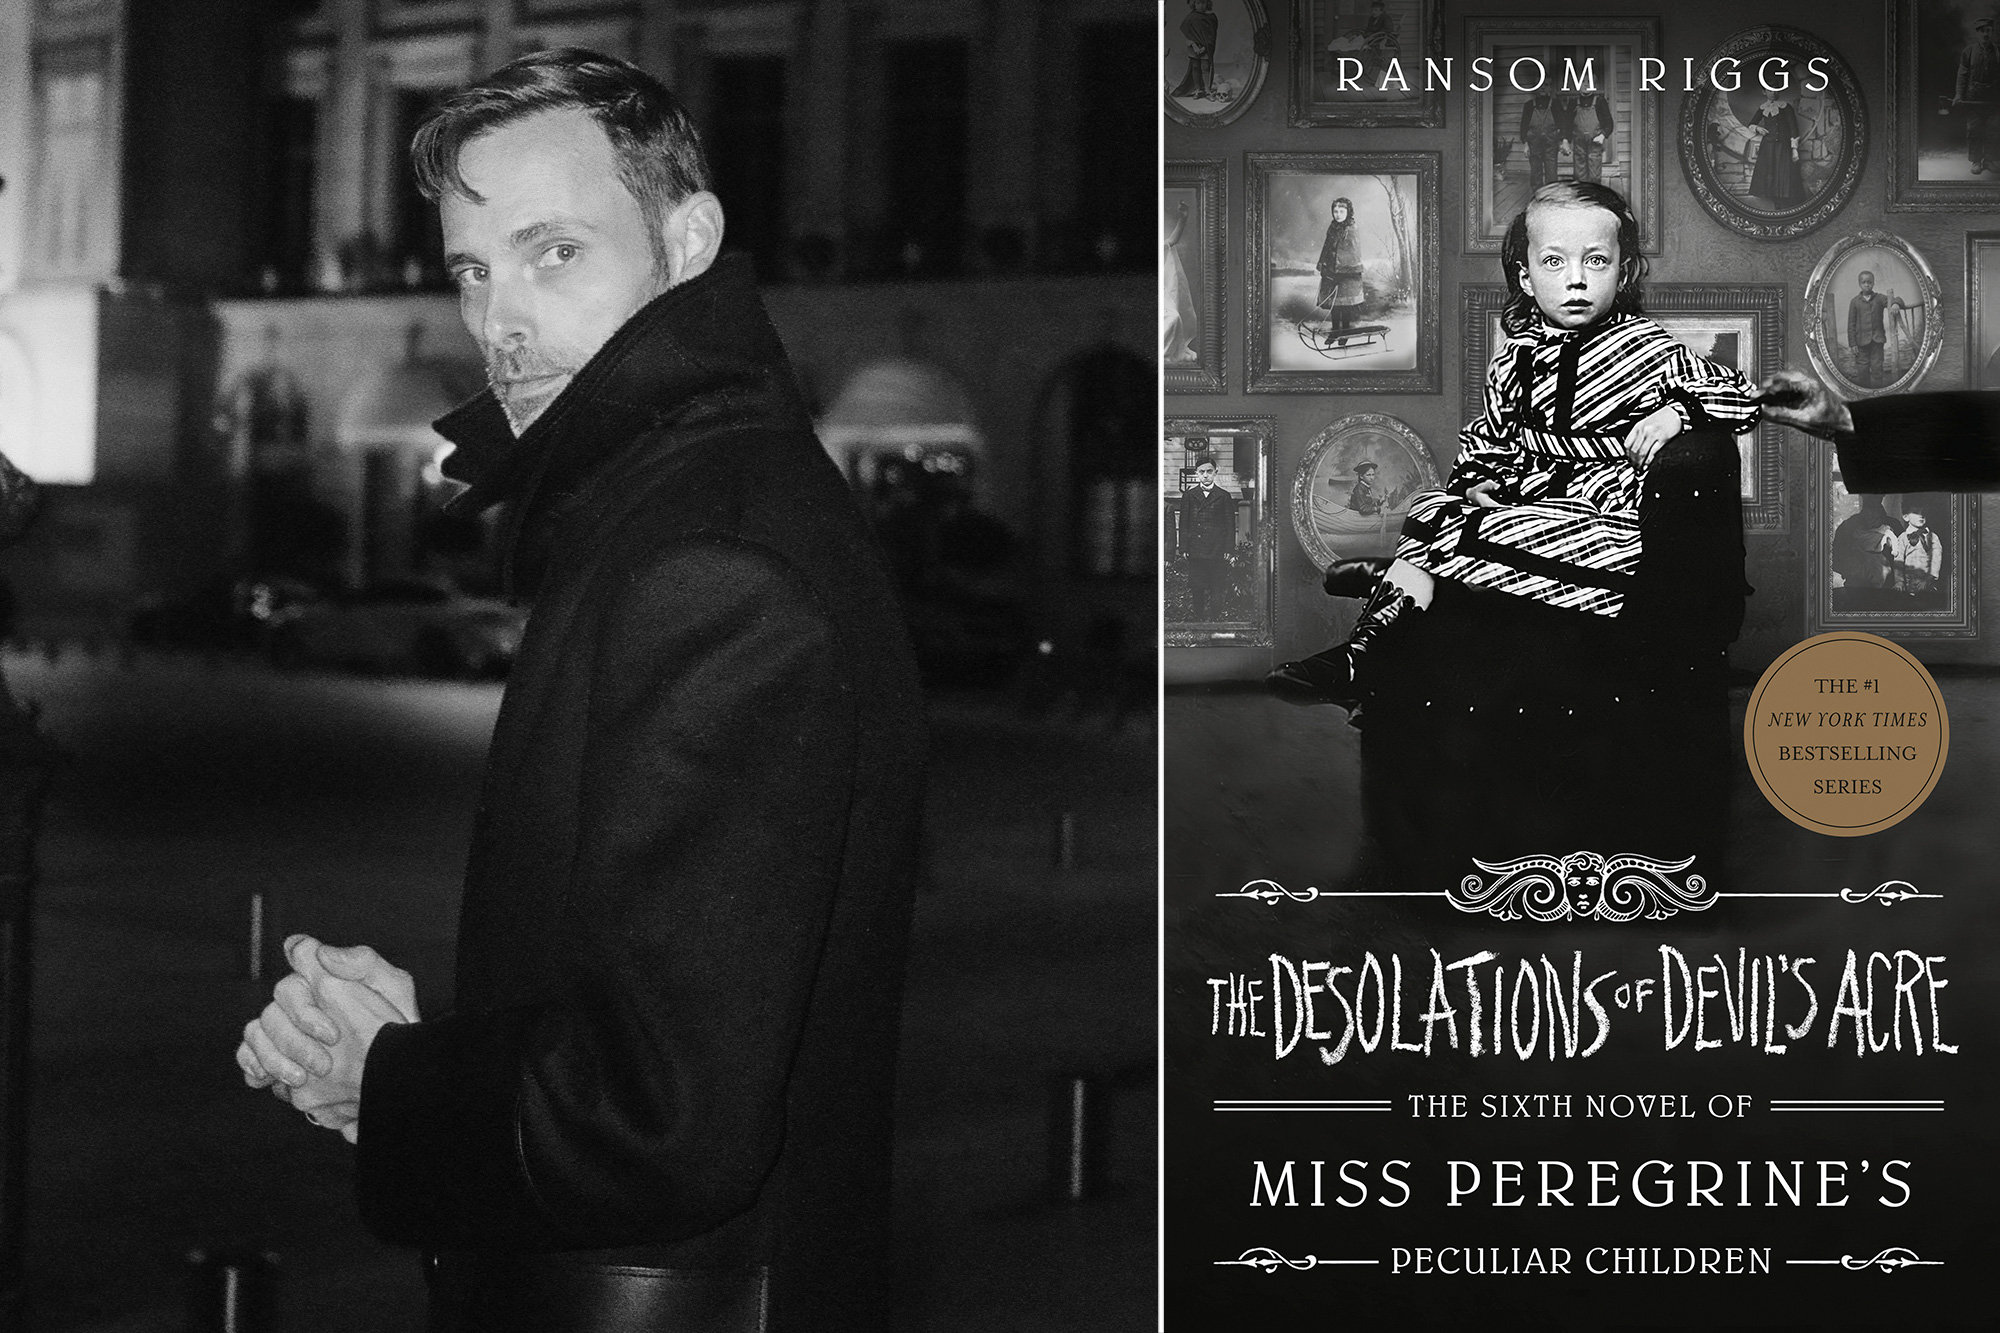 Ransom Riggs, The Desolations of Devil's Acre (Miss Peregrine's Peculiar Children Book 6)